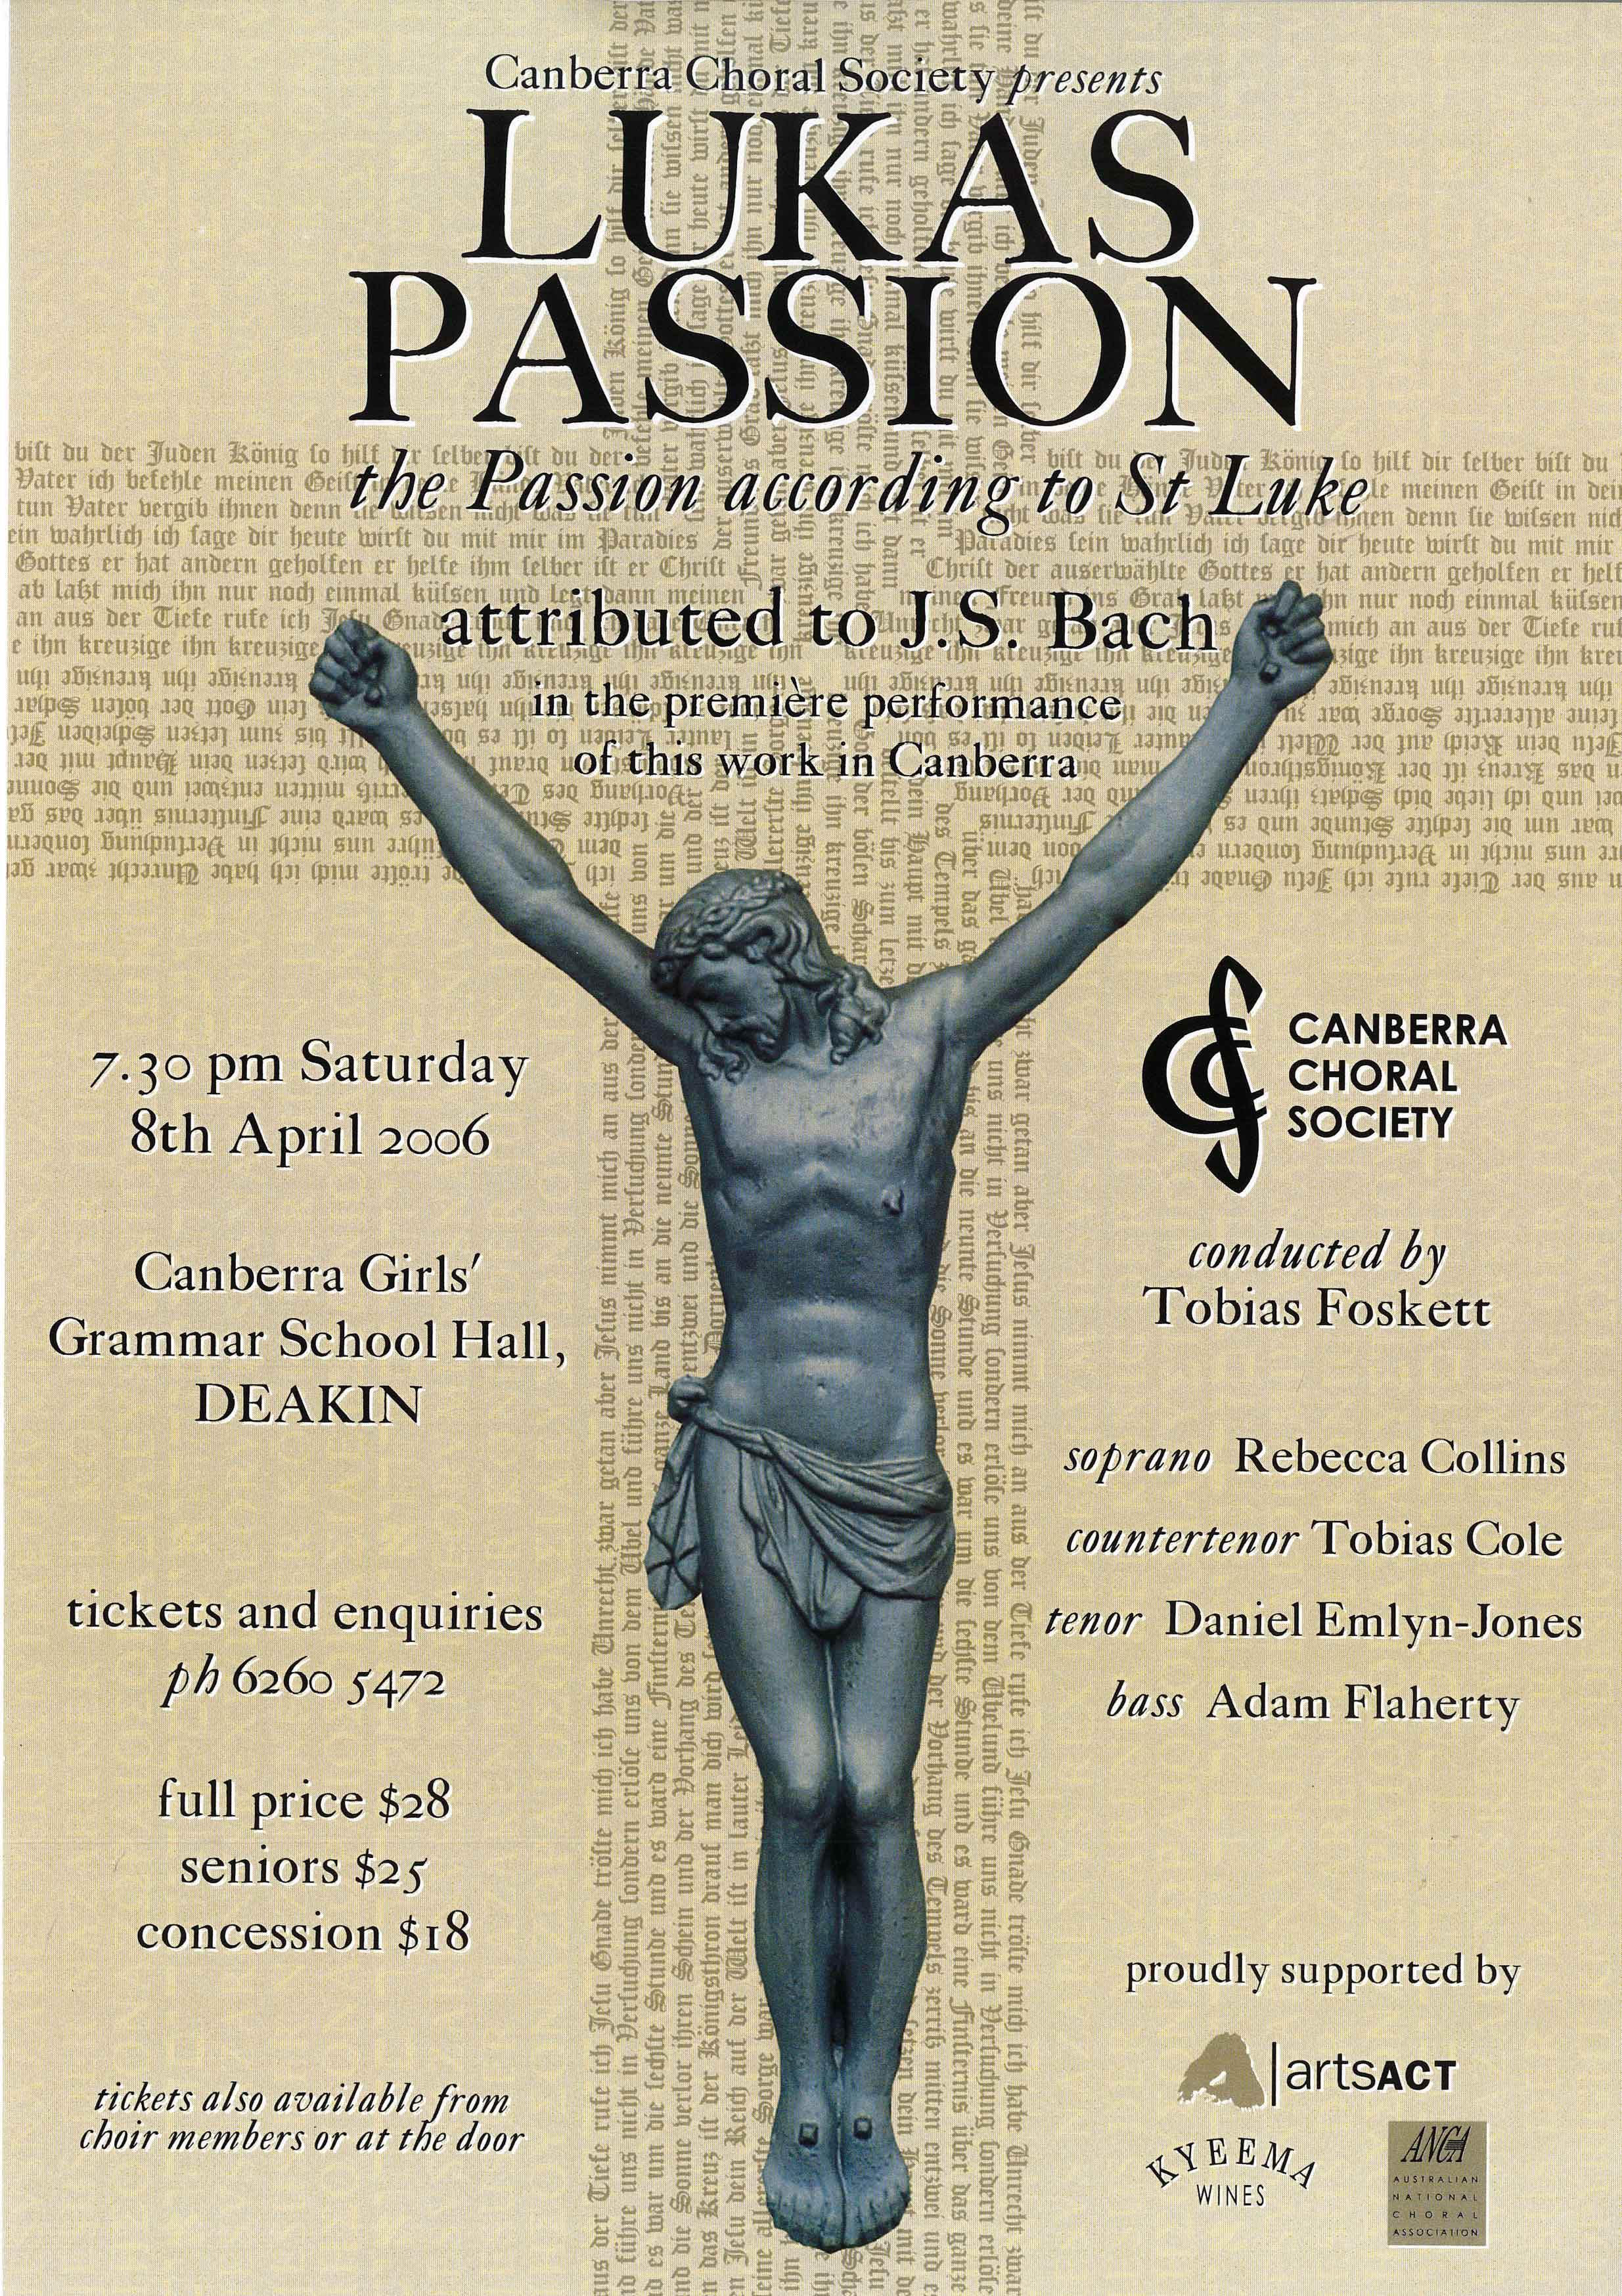 Lukas Passion 2006 poster